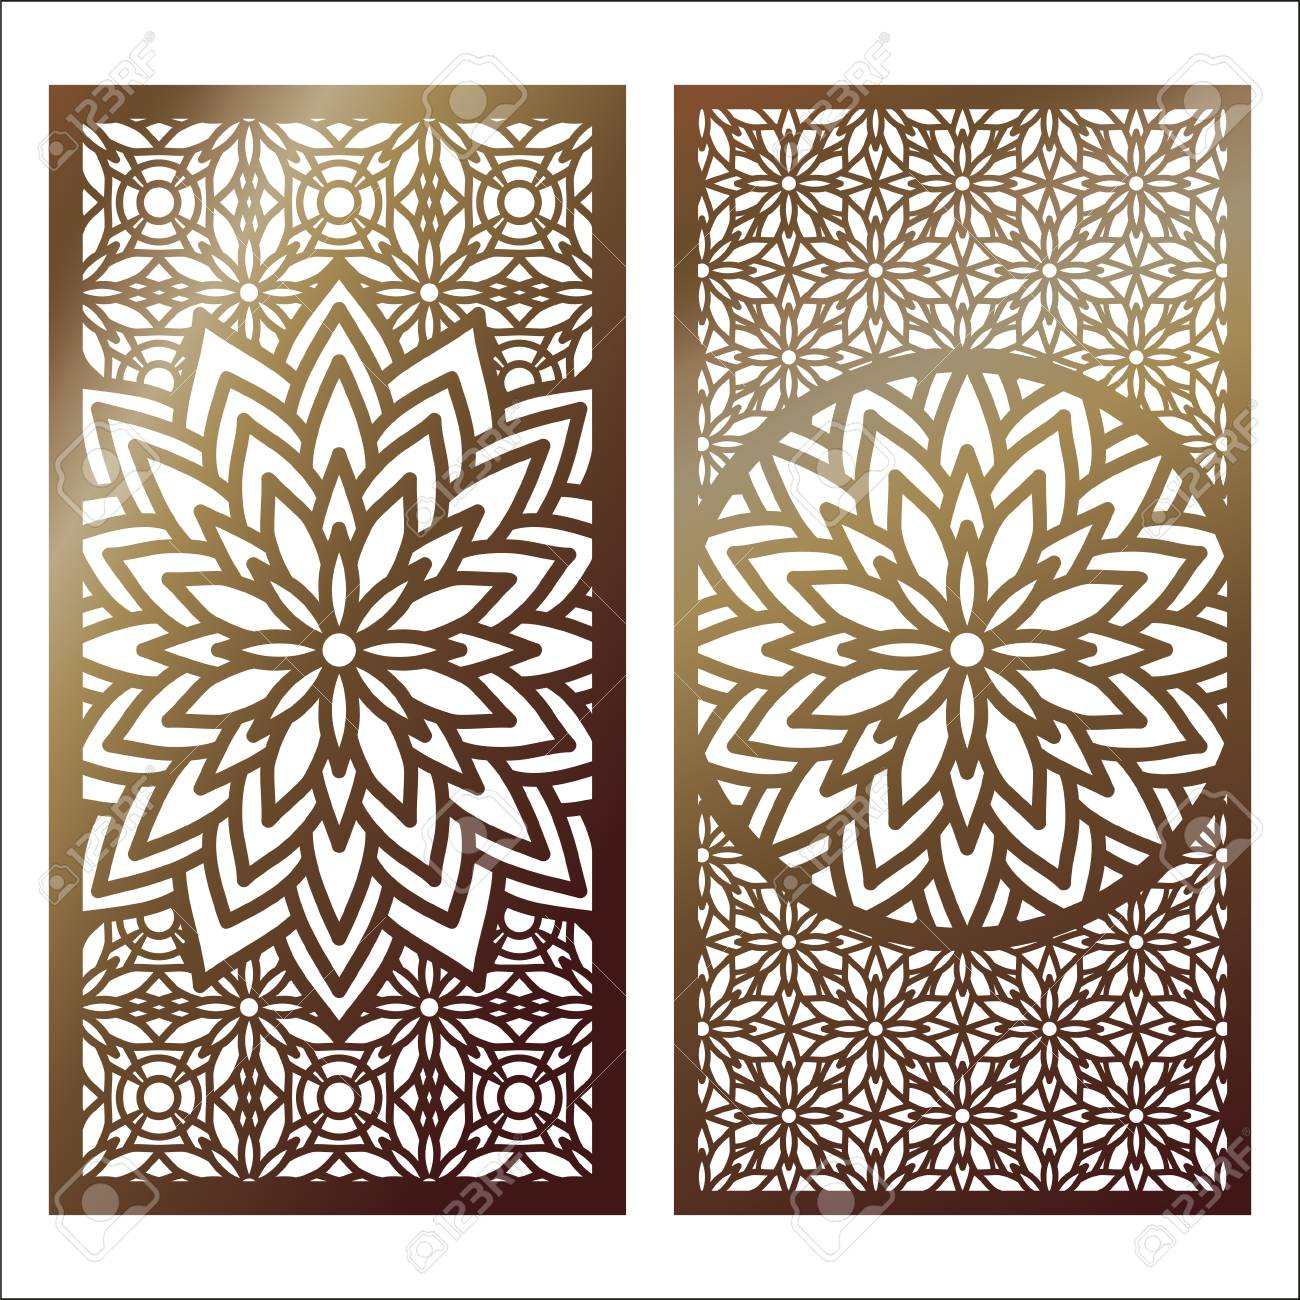 Set of golden laser cut panel with decorative floral designs